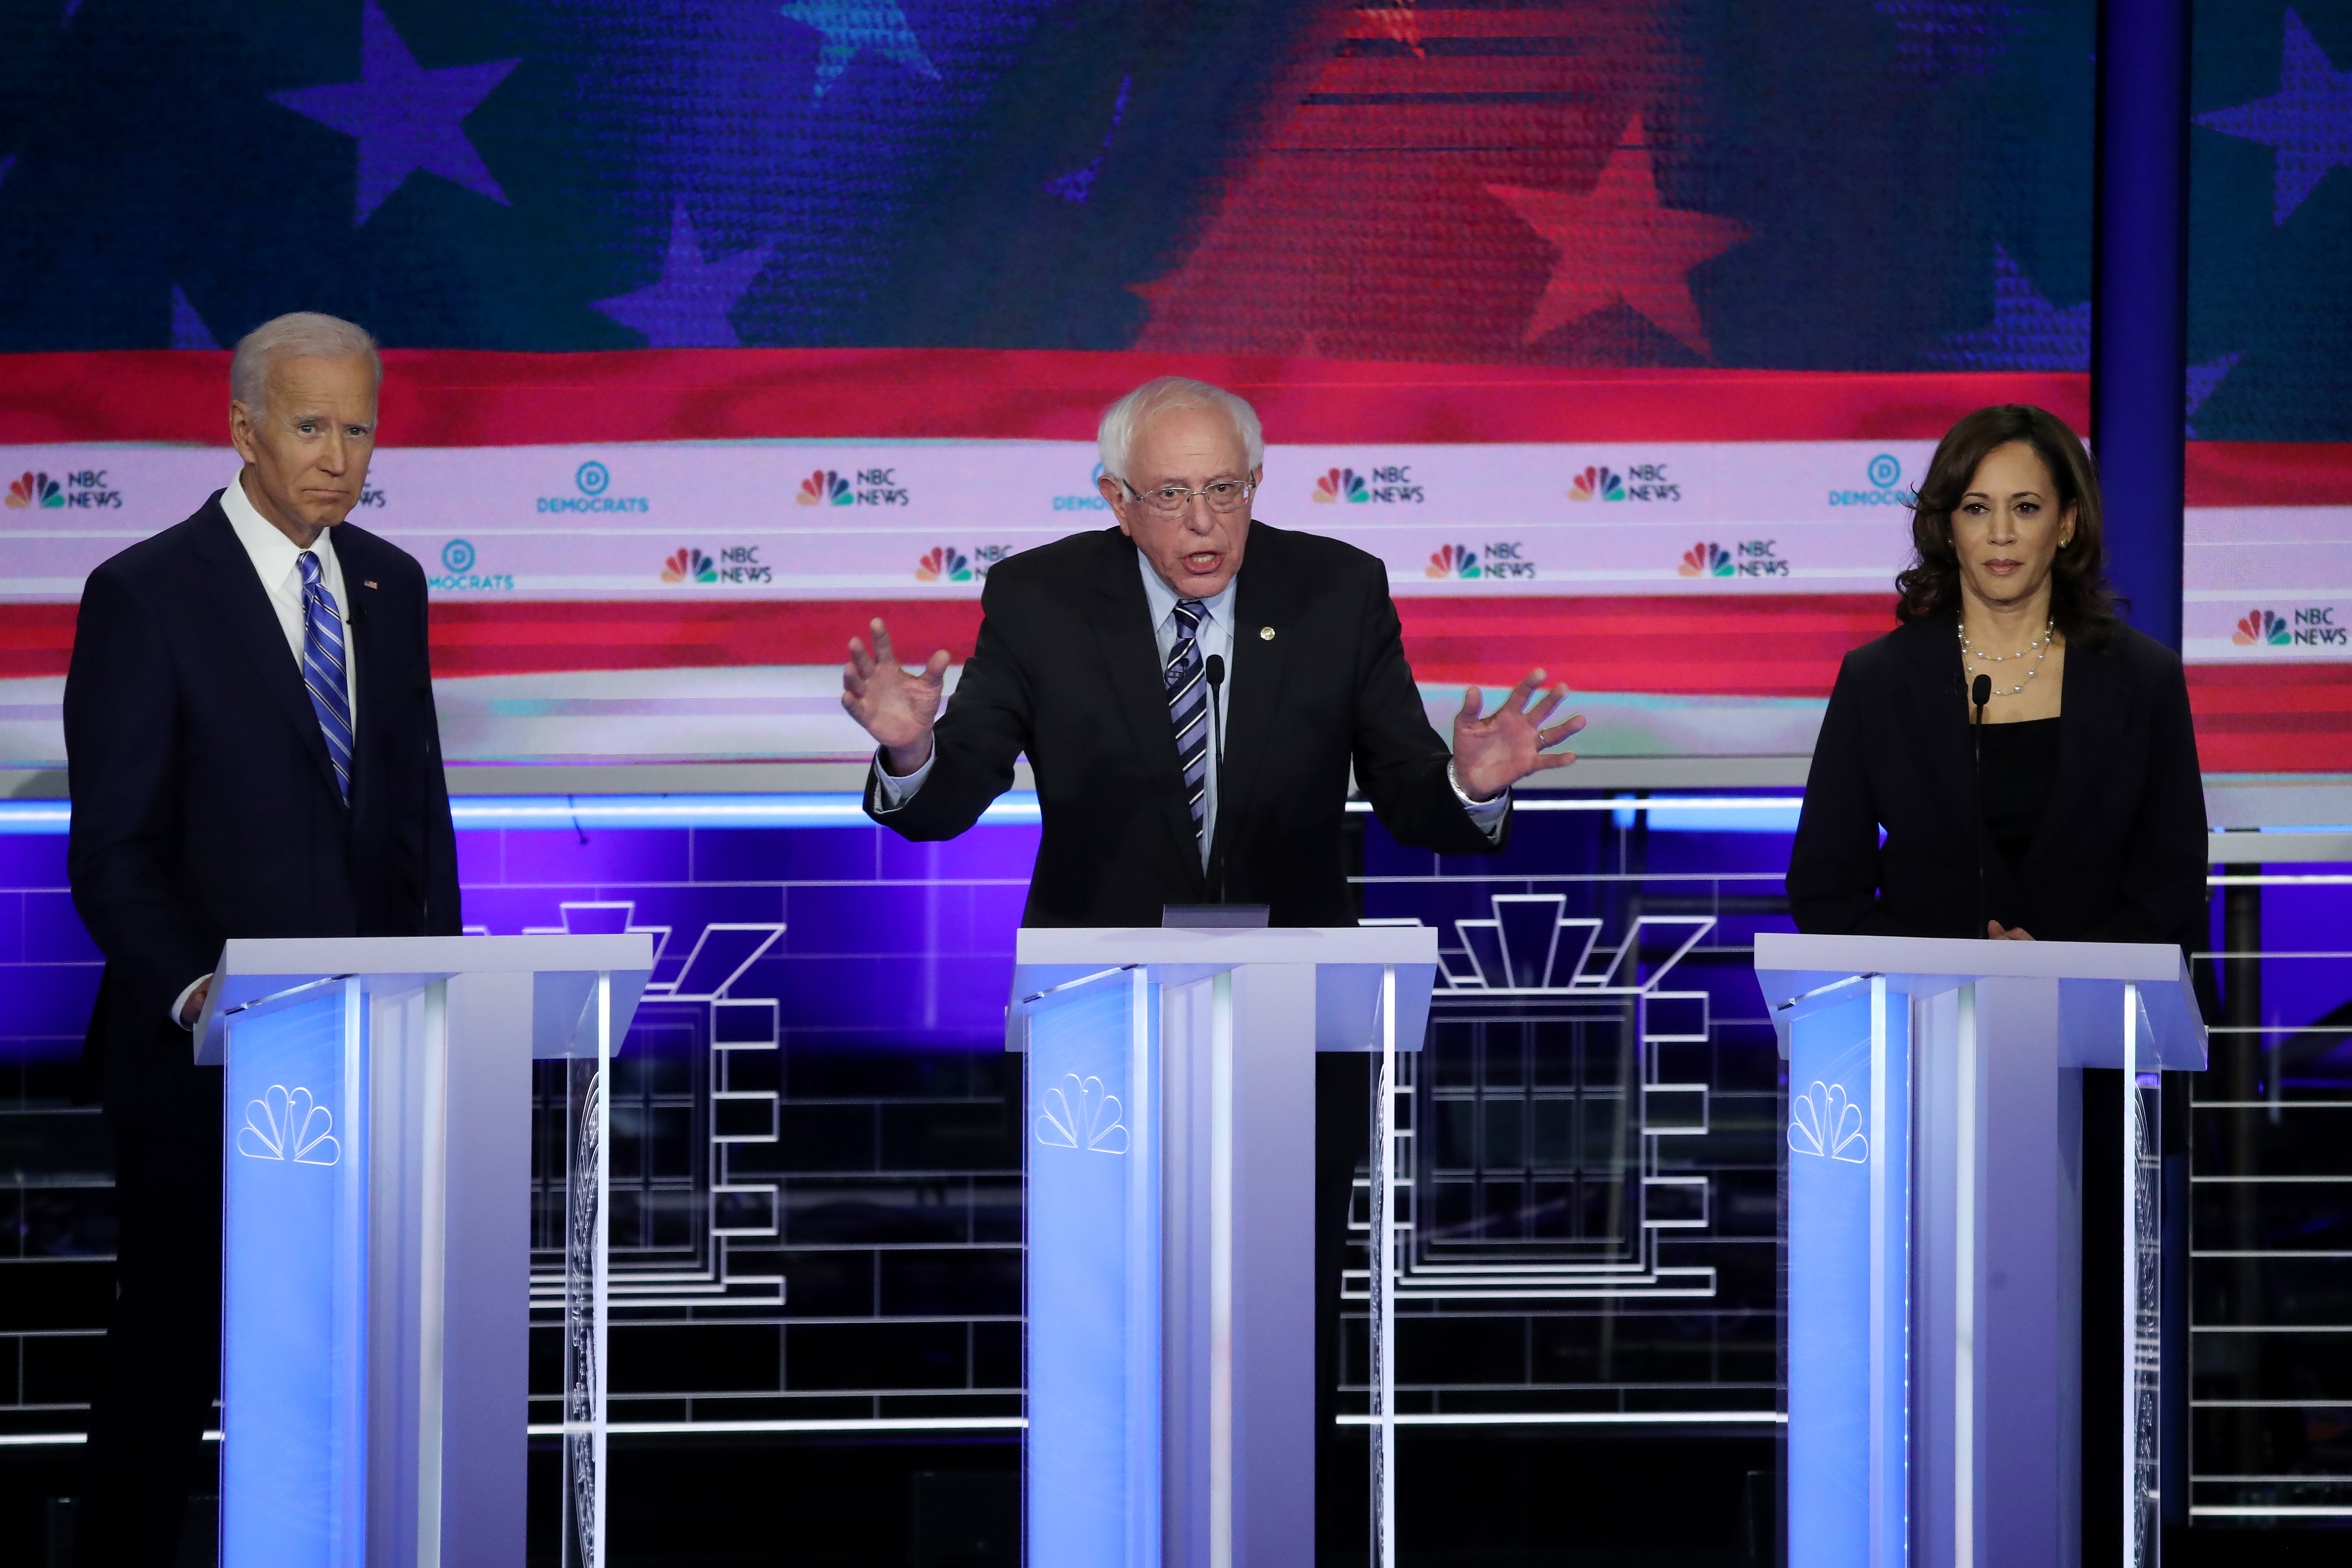 Democratic presidential candidates (L-R) former Vice President Joe Biden, Sen. Bernie Sanders and Sen. Kamala Harris take part in the second night of the first Democratic presidential debate on June 27, 2019 in Miami, Florida. (Photo by Drew Angerer/Getty Images)